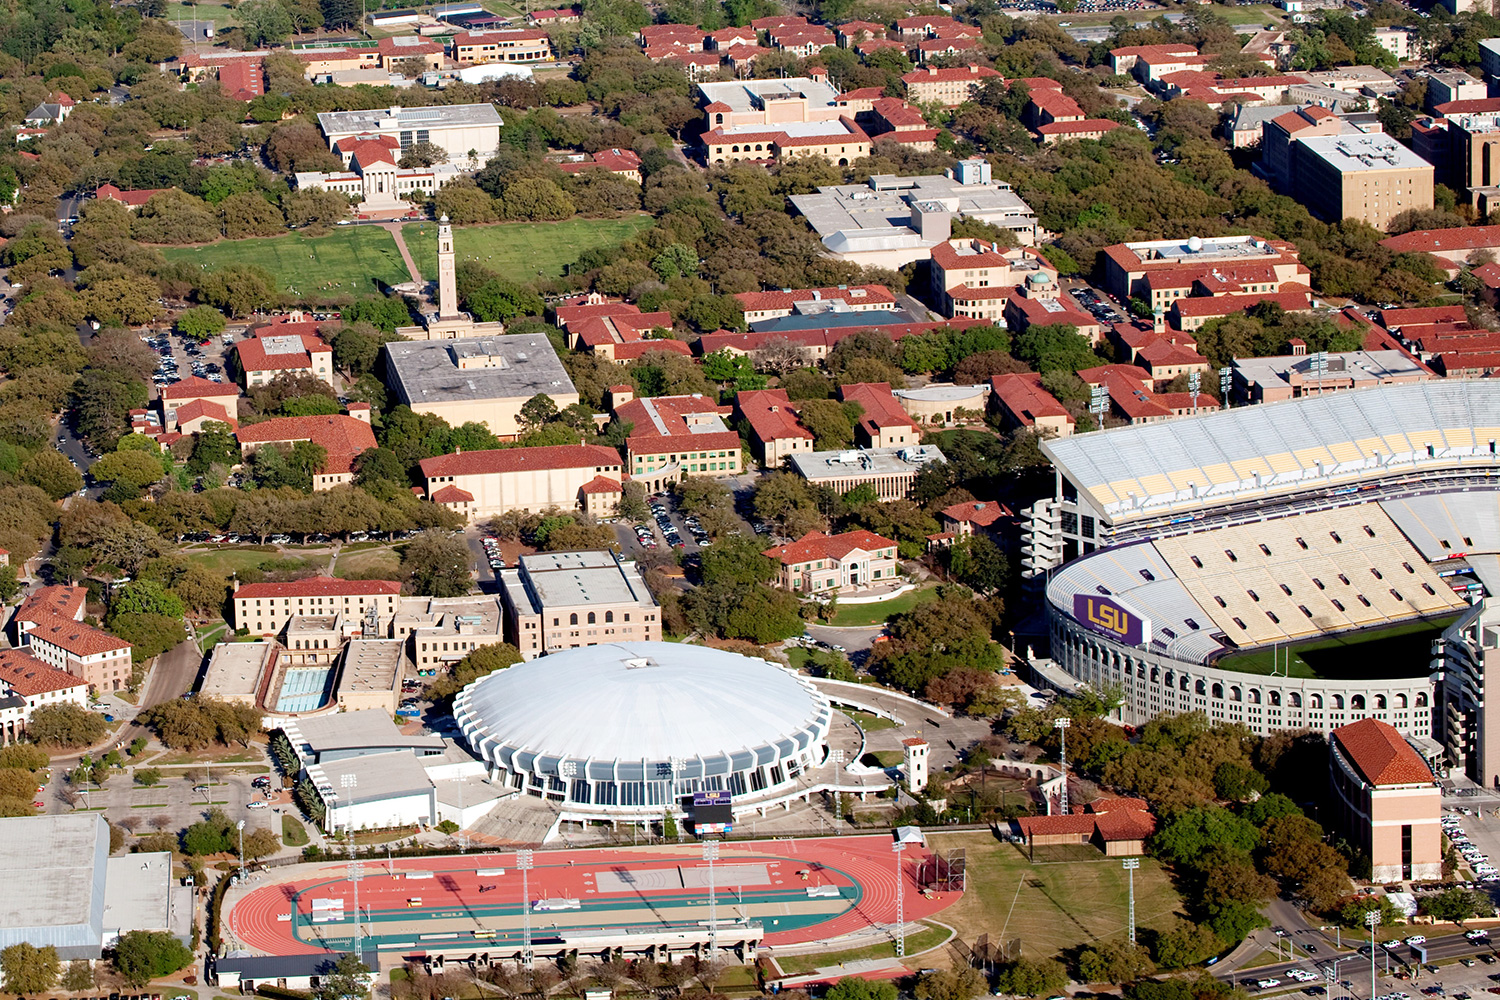 Aerial of The Louisiana State University Campus with University Lake in the background, Baton Rouge, Louisiana